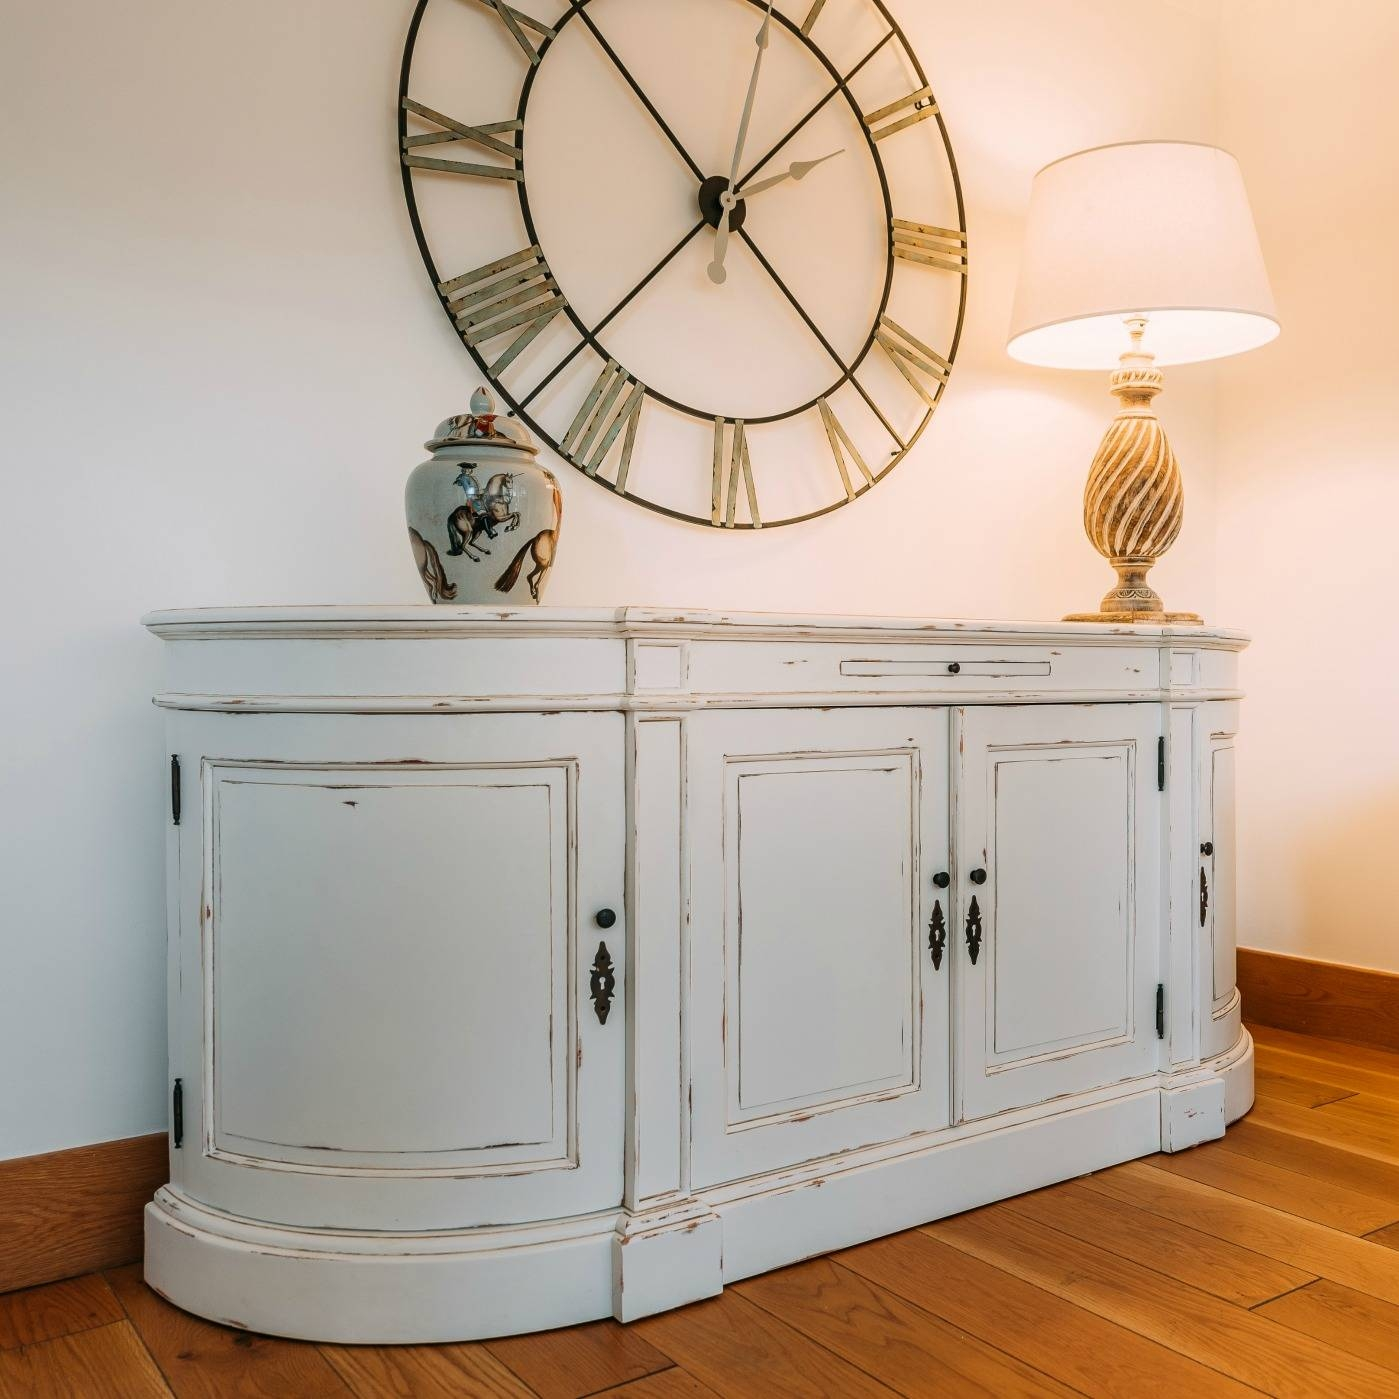 Aged French Distressed White Large Sideboard Furniture – La Maison Within Large White Sideboards (View 14 of 15)